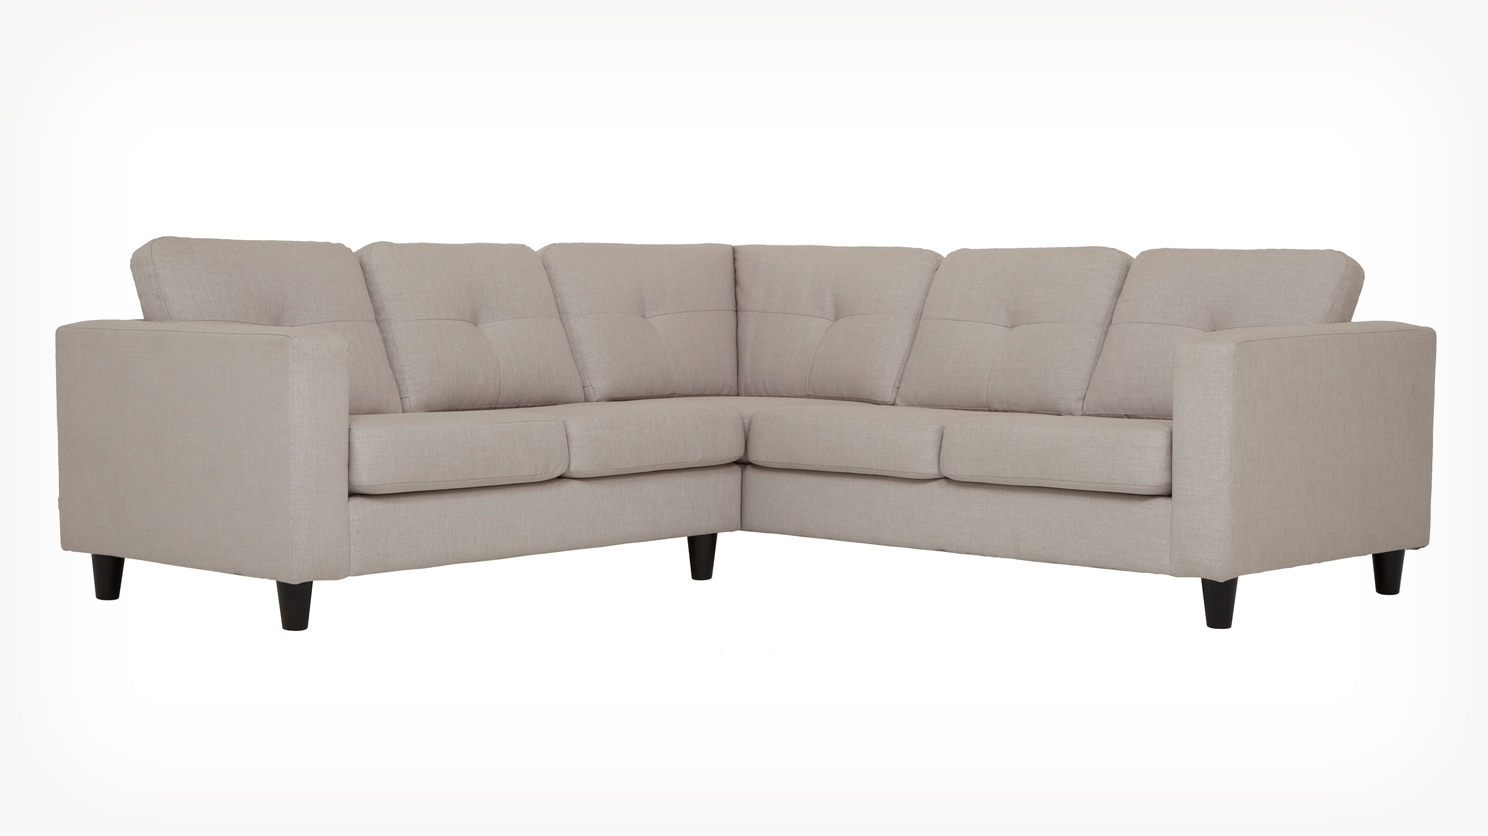 Solo 2 Piece Sectional Sofa – Fabric Inside Favorite Eq3 Sectional Sofas (View 3 of 20)